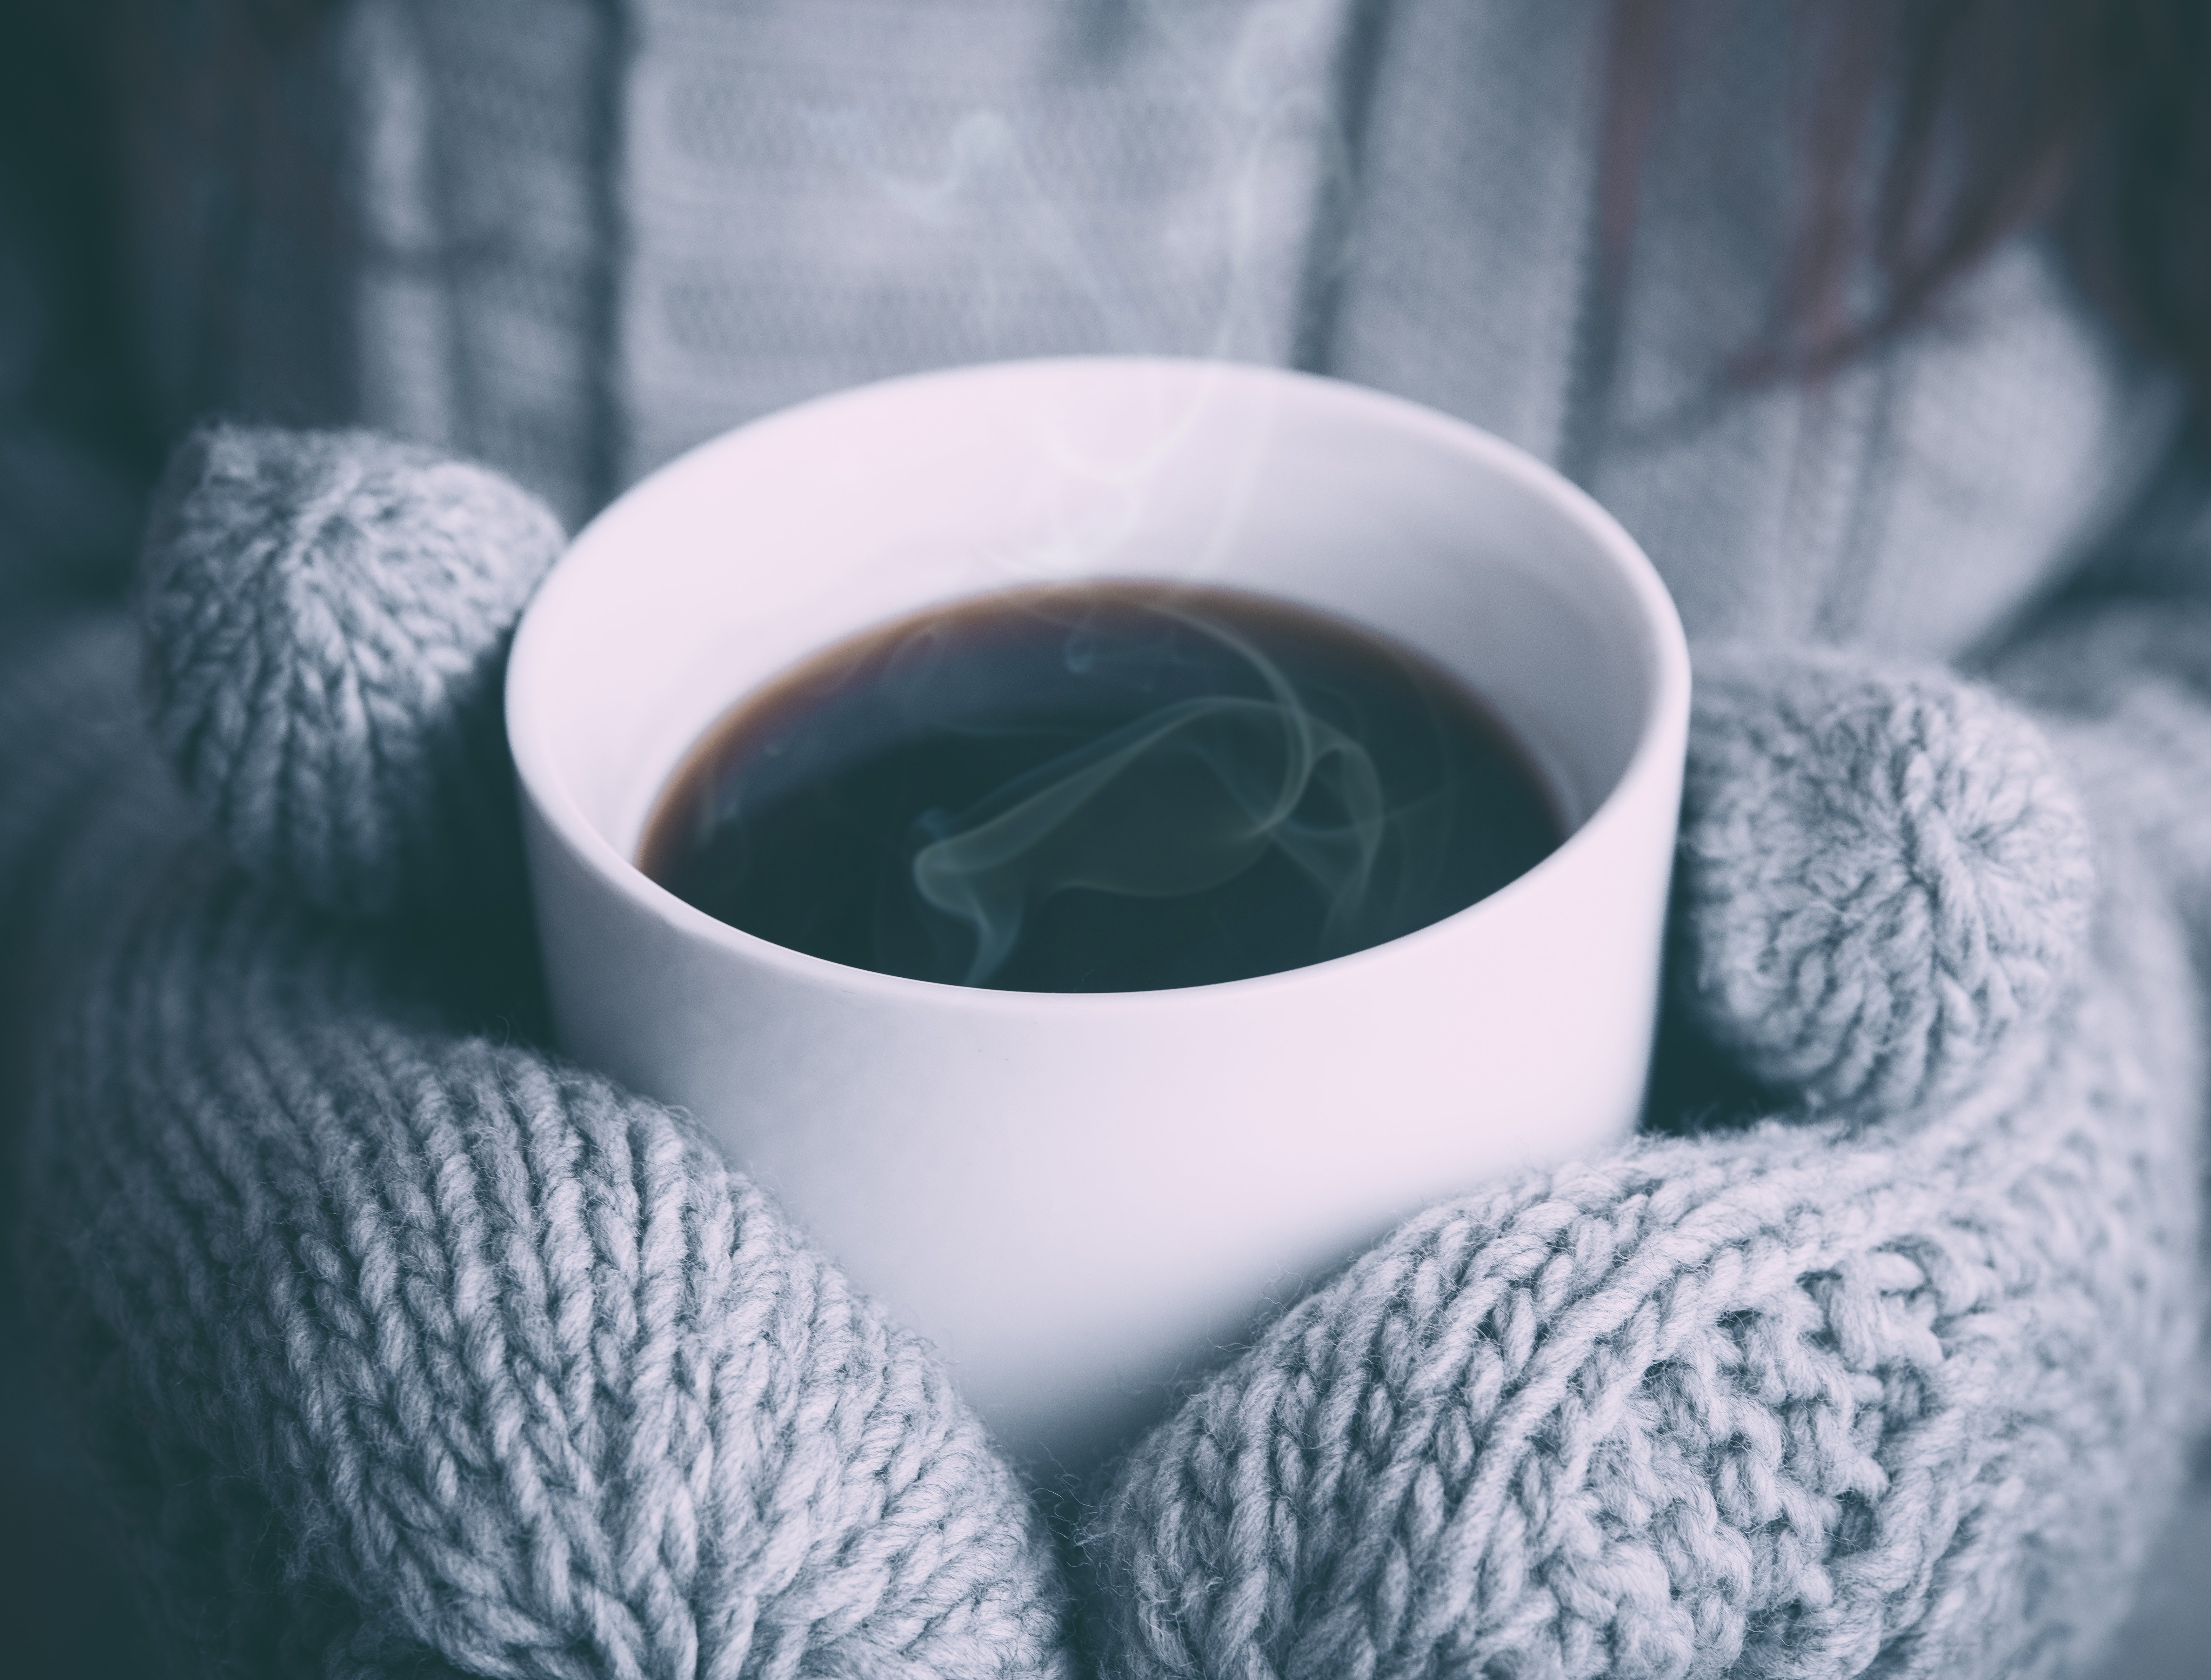 A steaming hot mug of coffee held by someone wearing knitted grey mittens